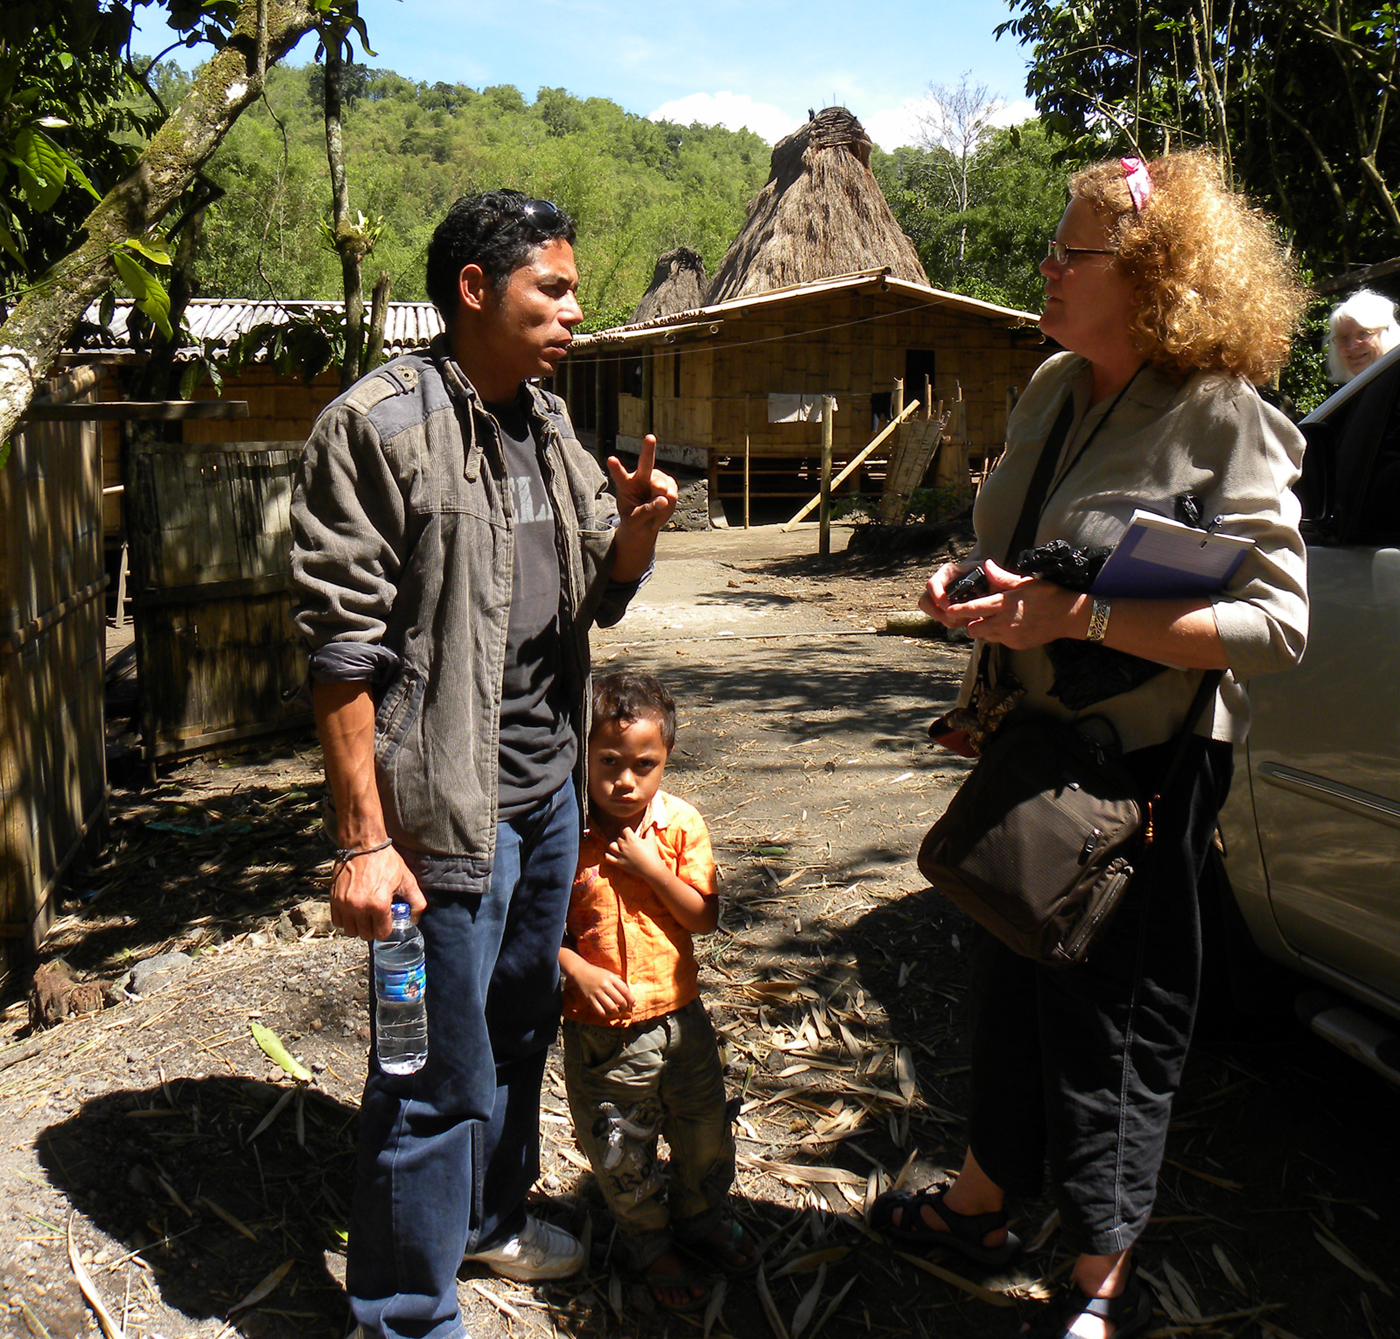 Barbara Rieke Turner and a translator discuss the art of a village in a remote area of Flores, Indonesia. (Photo courtesy Kim Hammer)